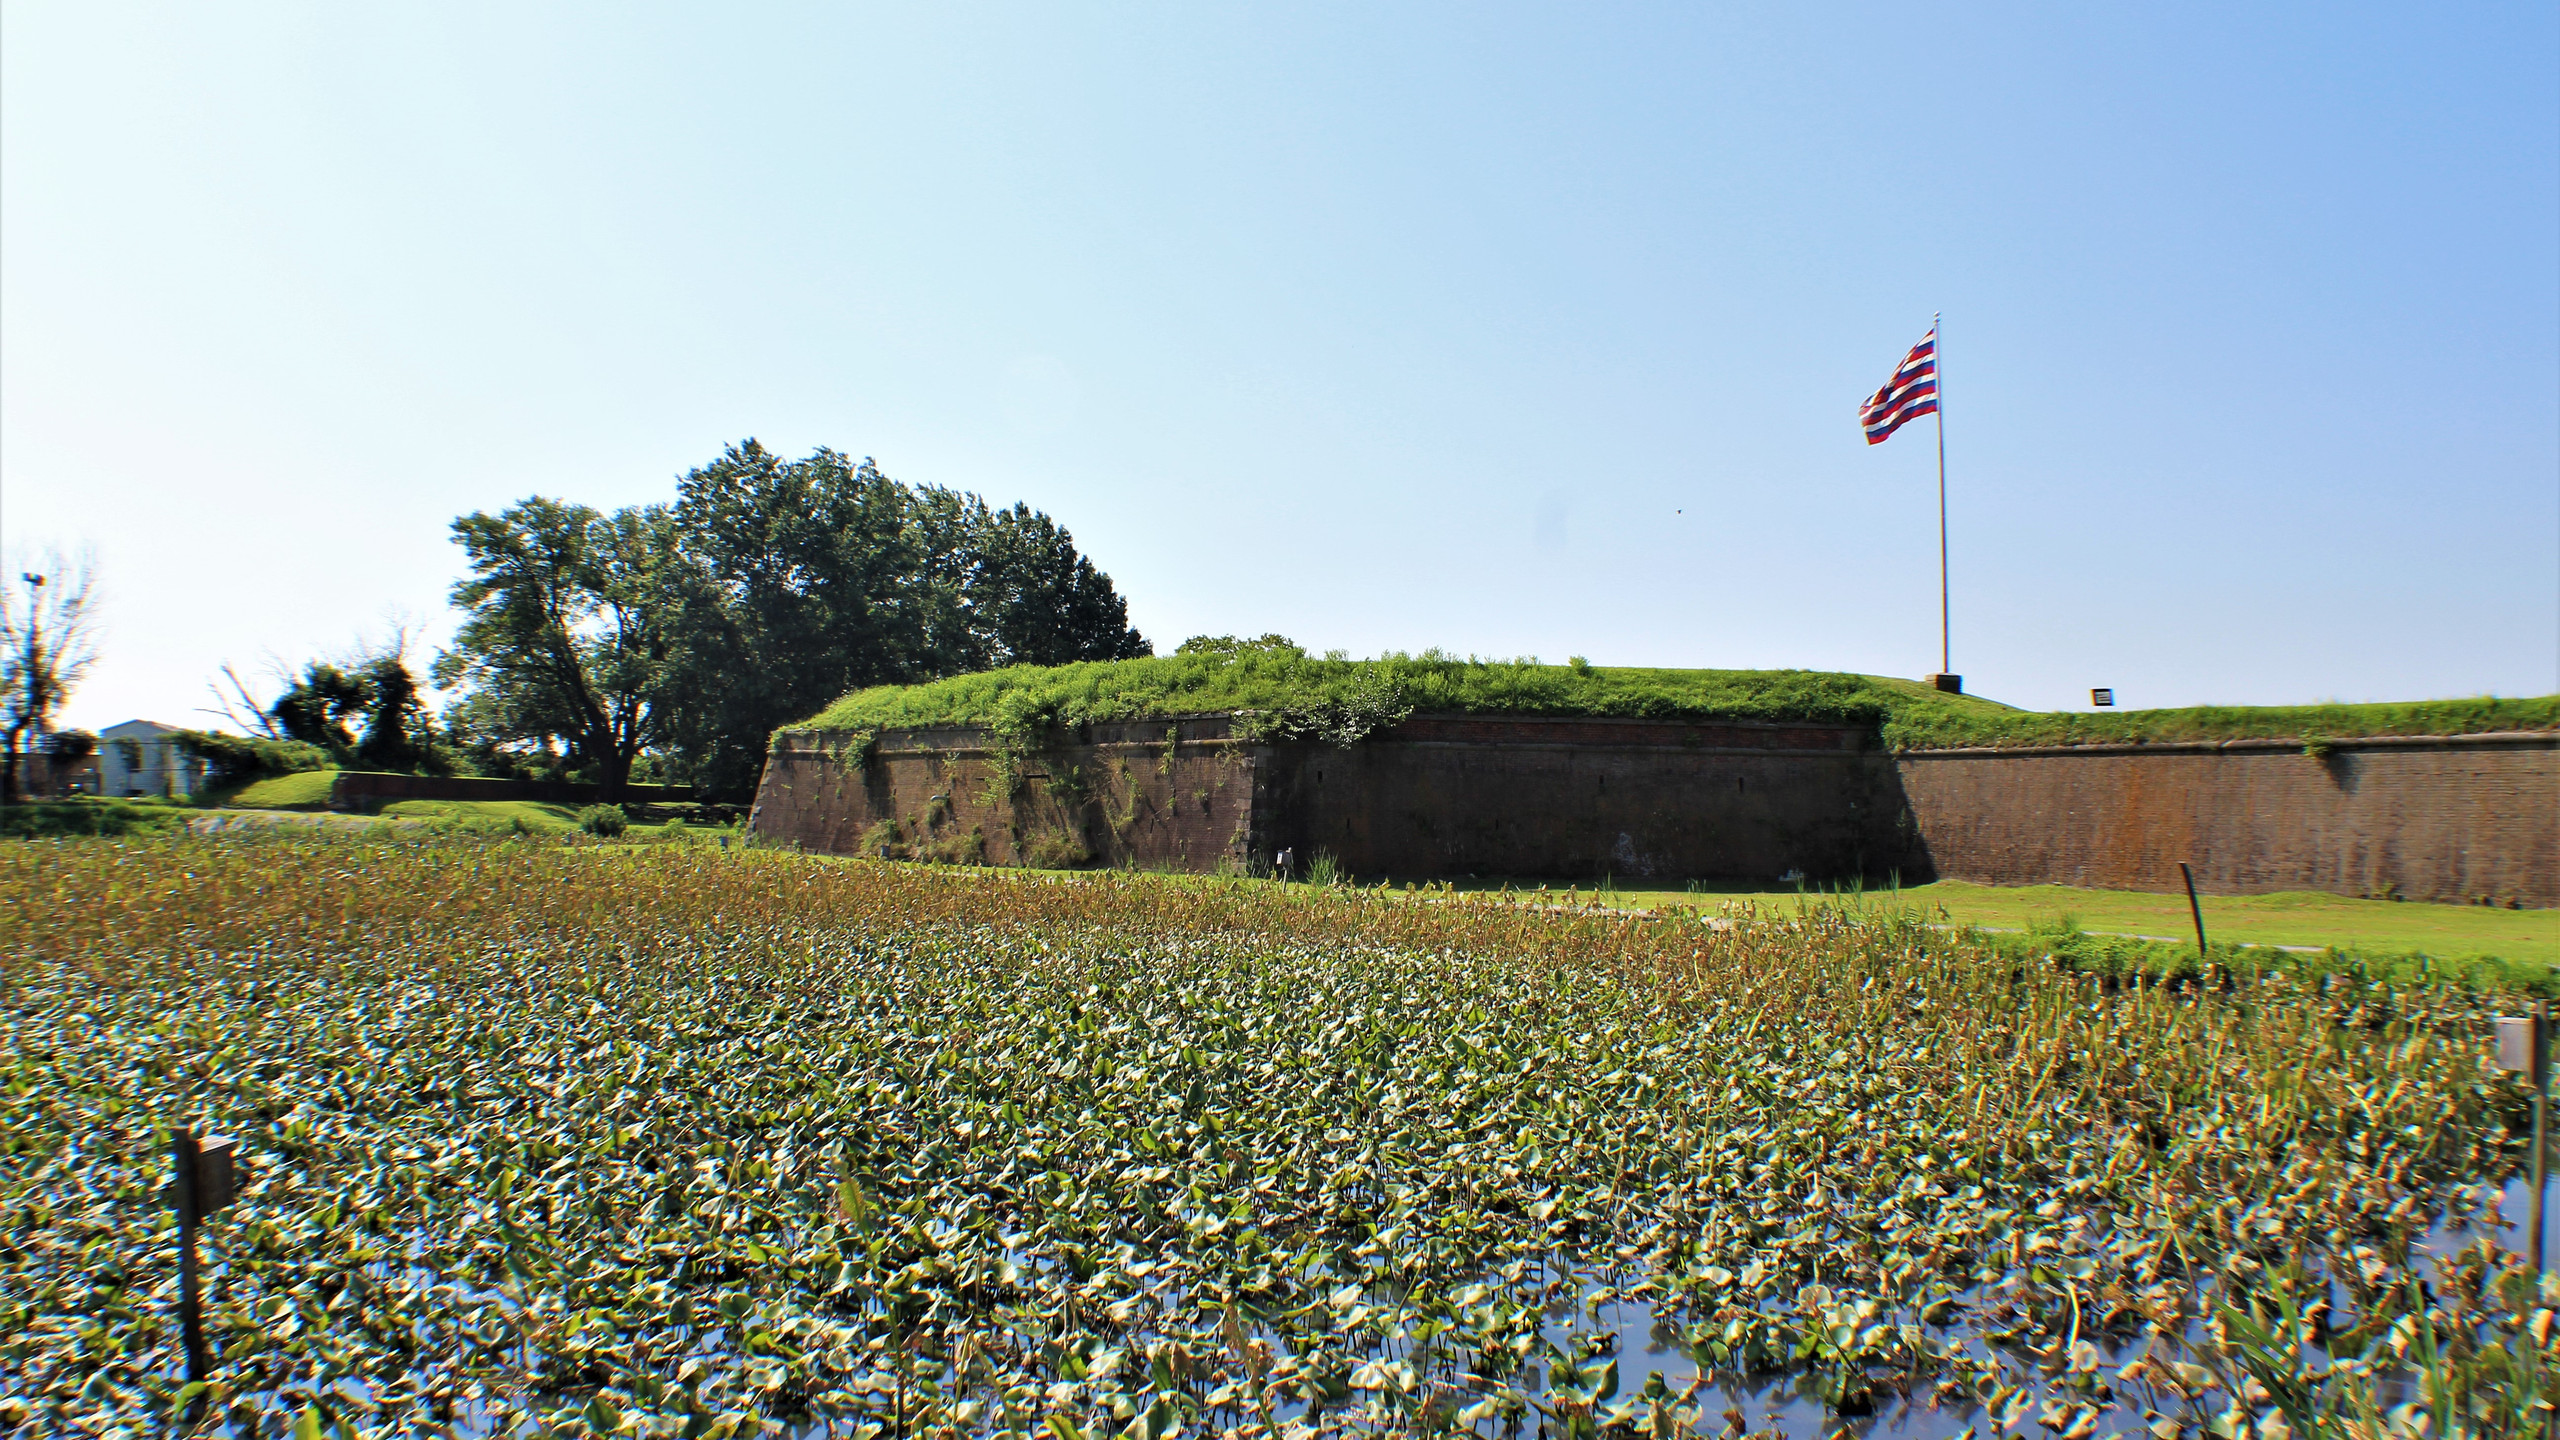 The Moat and Northeast Bastion